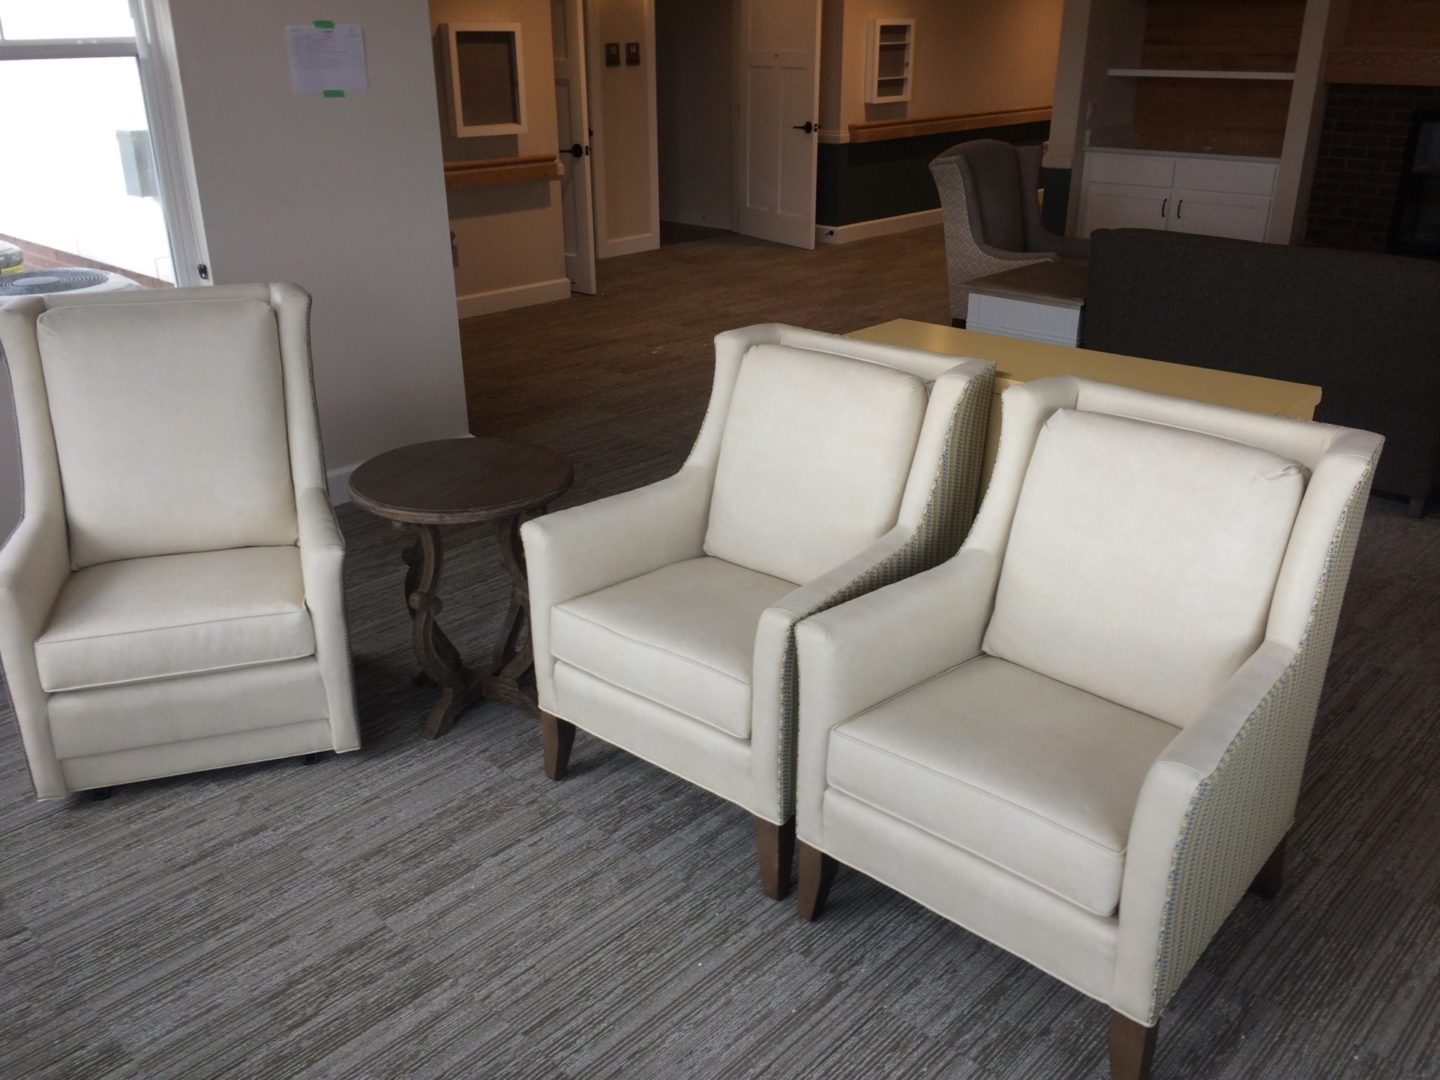 white chairs in assisted living facility